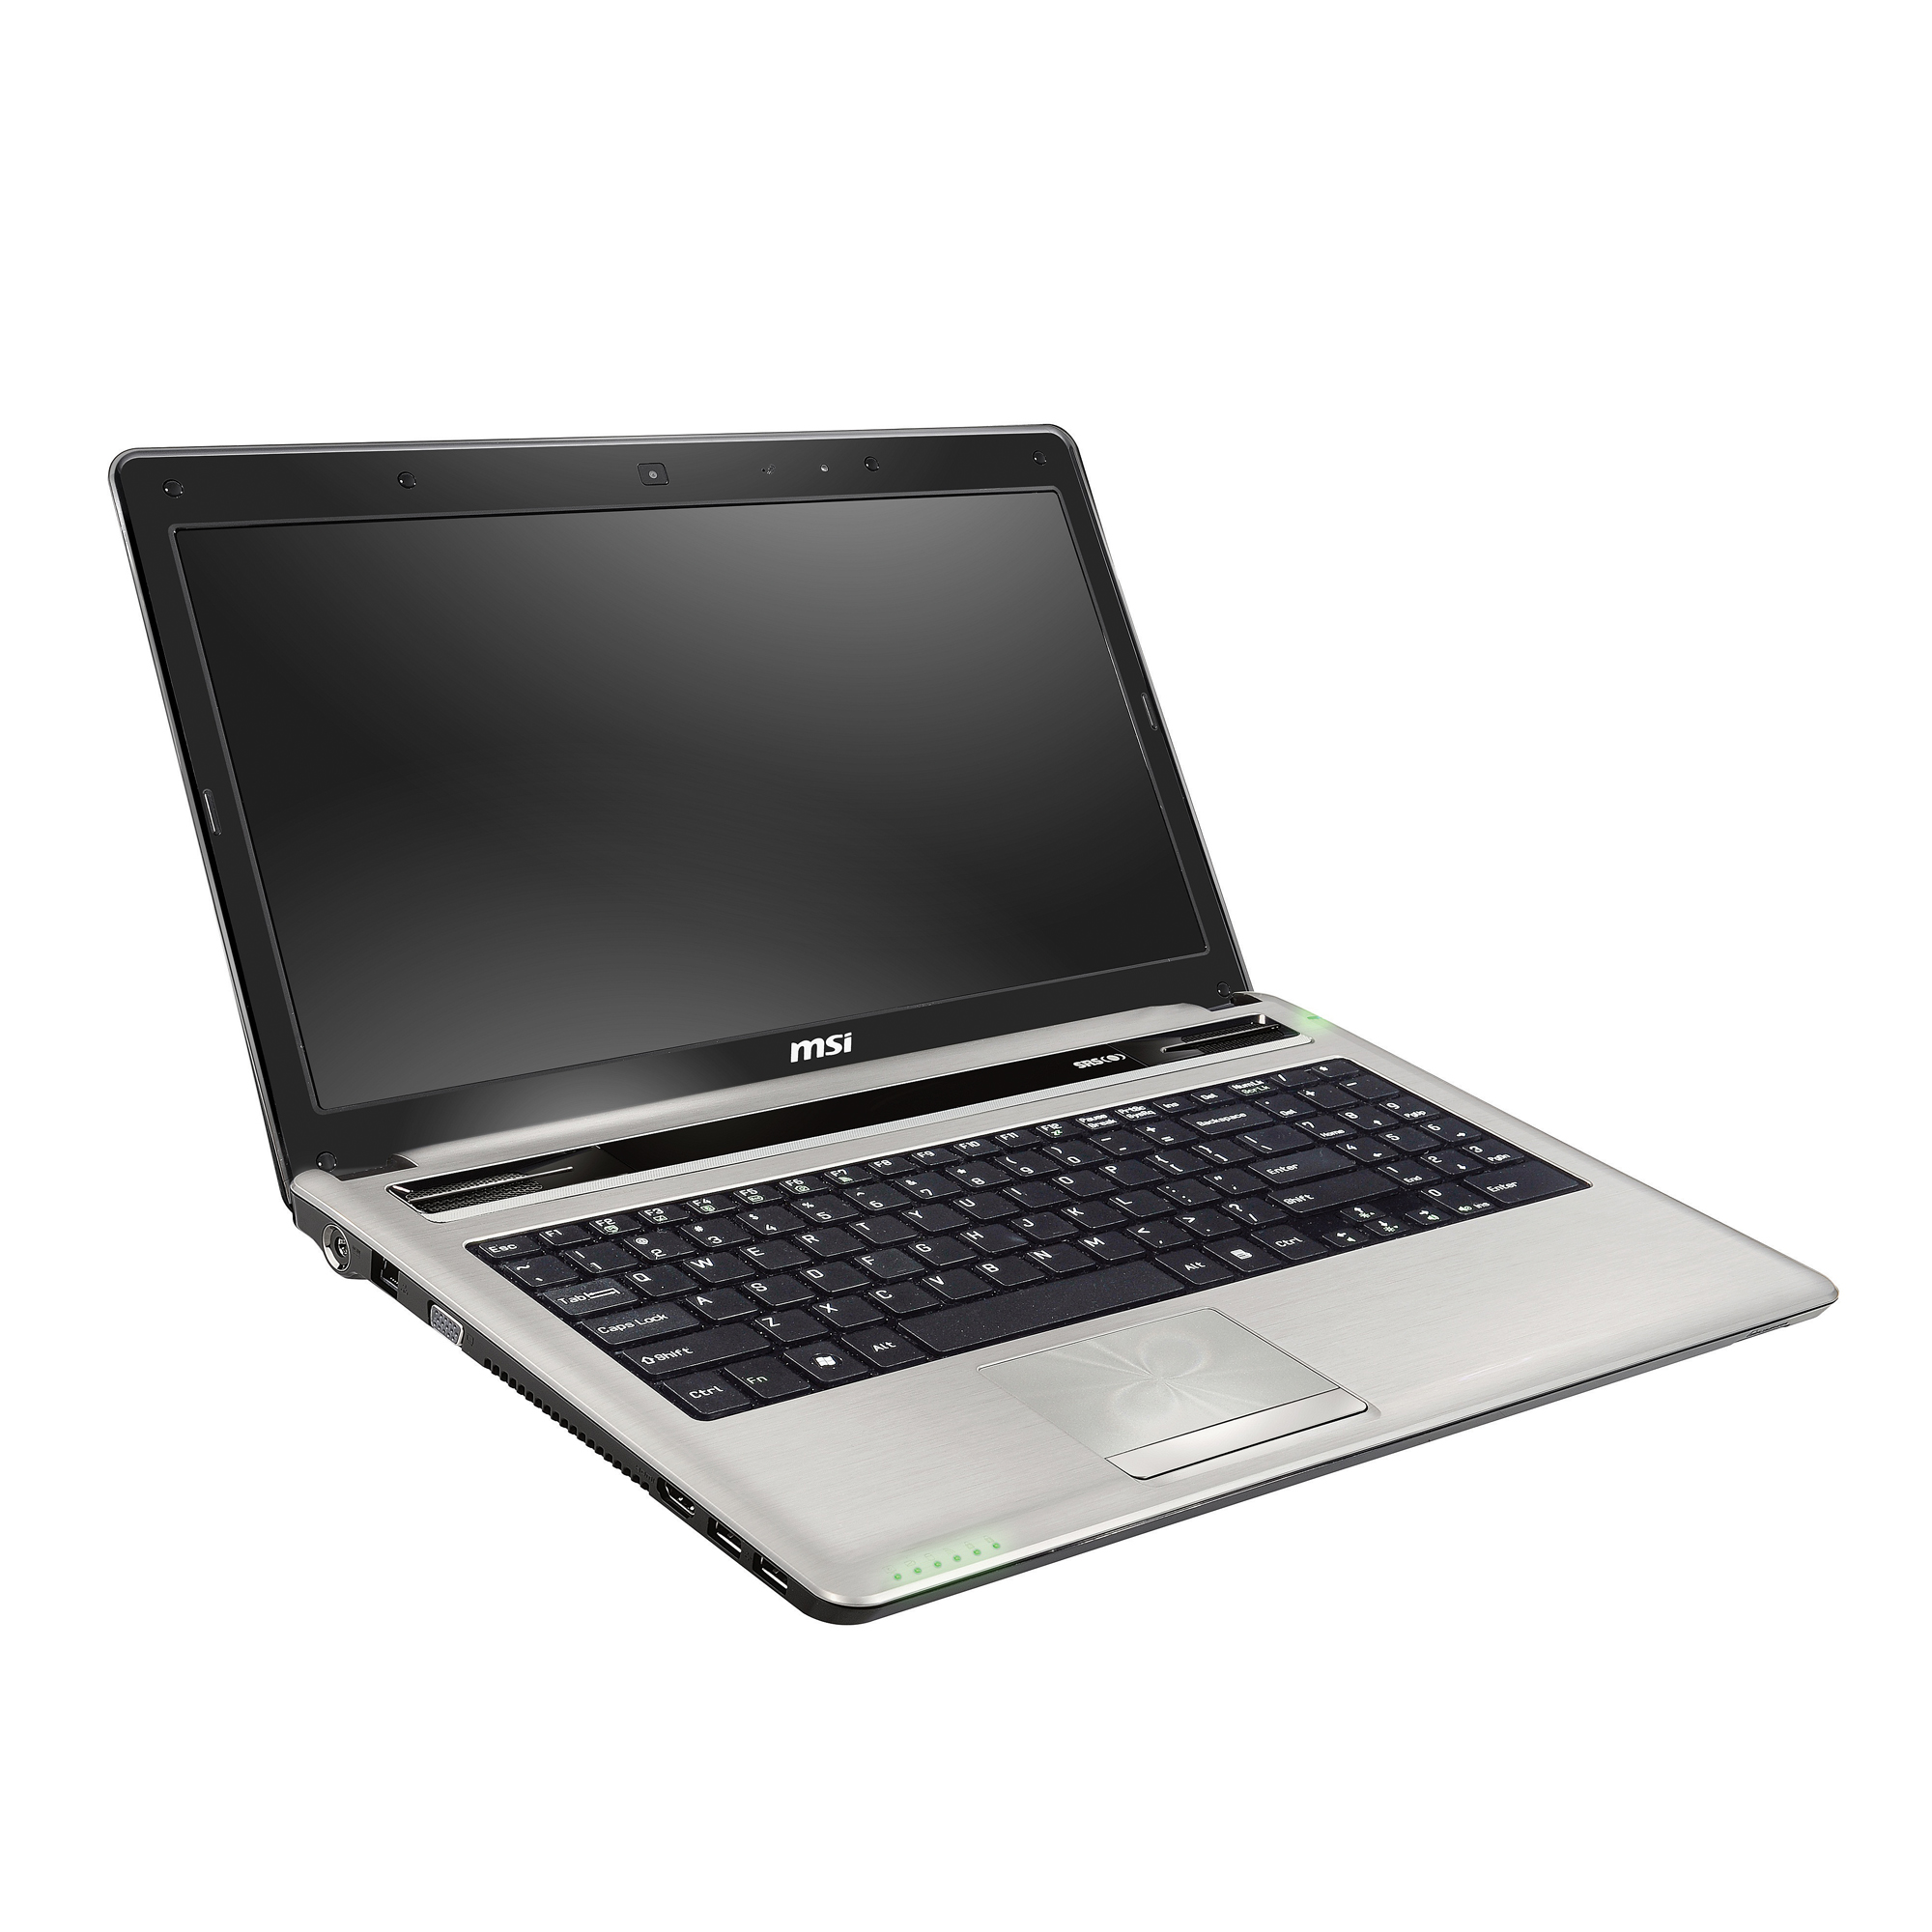 """MSI™ A6400-042US Laptop Computer With 15.6"""" LCD Screen & Intel® Core™ i5-2410M Processor With Turbo Boost Technology, Silver"""